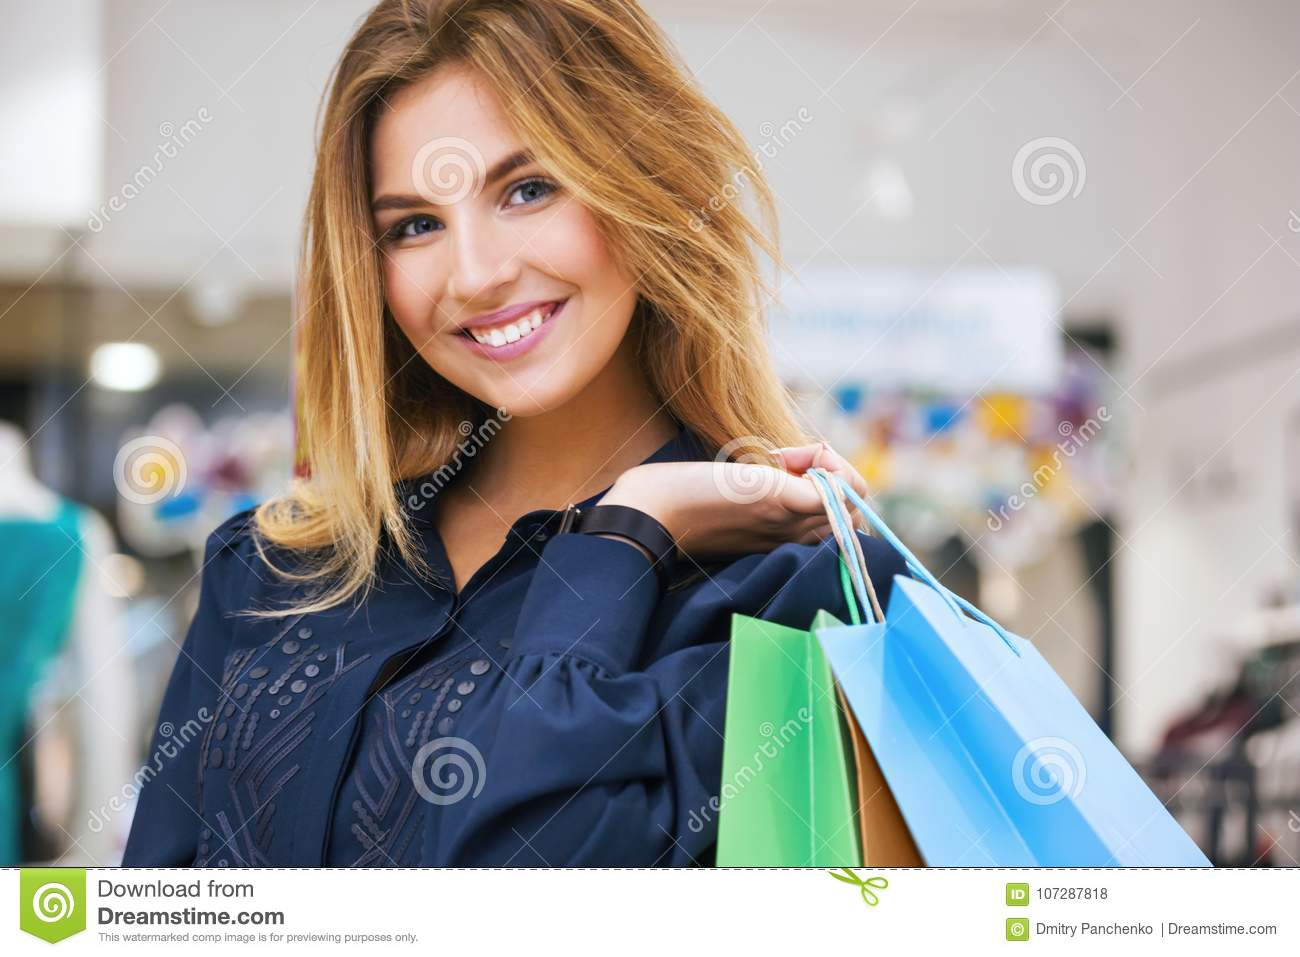 b67e6c1a25 Portrait of beautiful young woman with shopping bags going out on a shopping  spree.